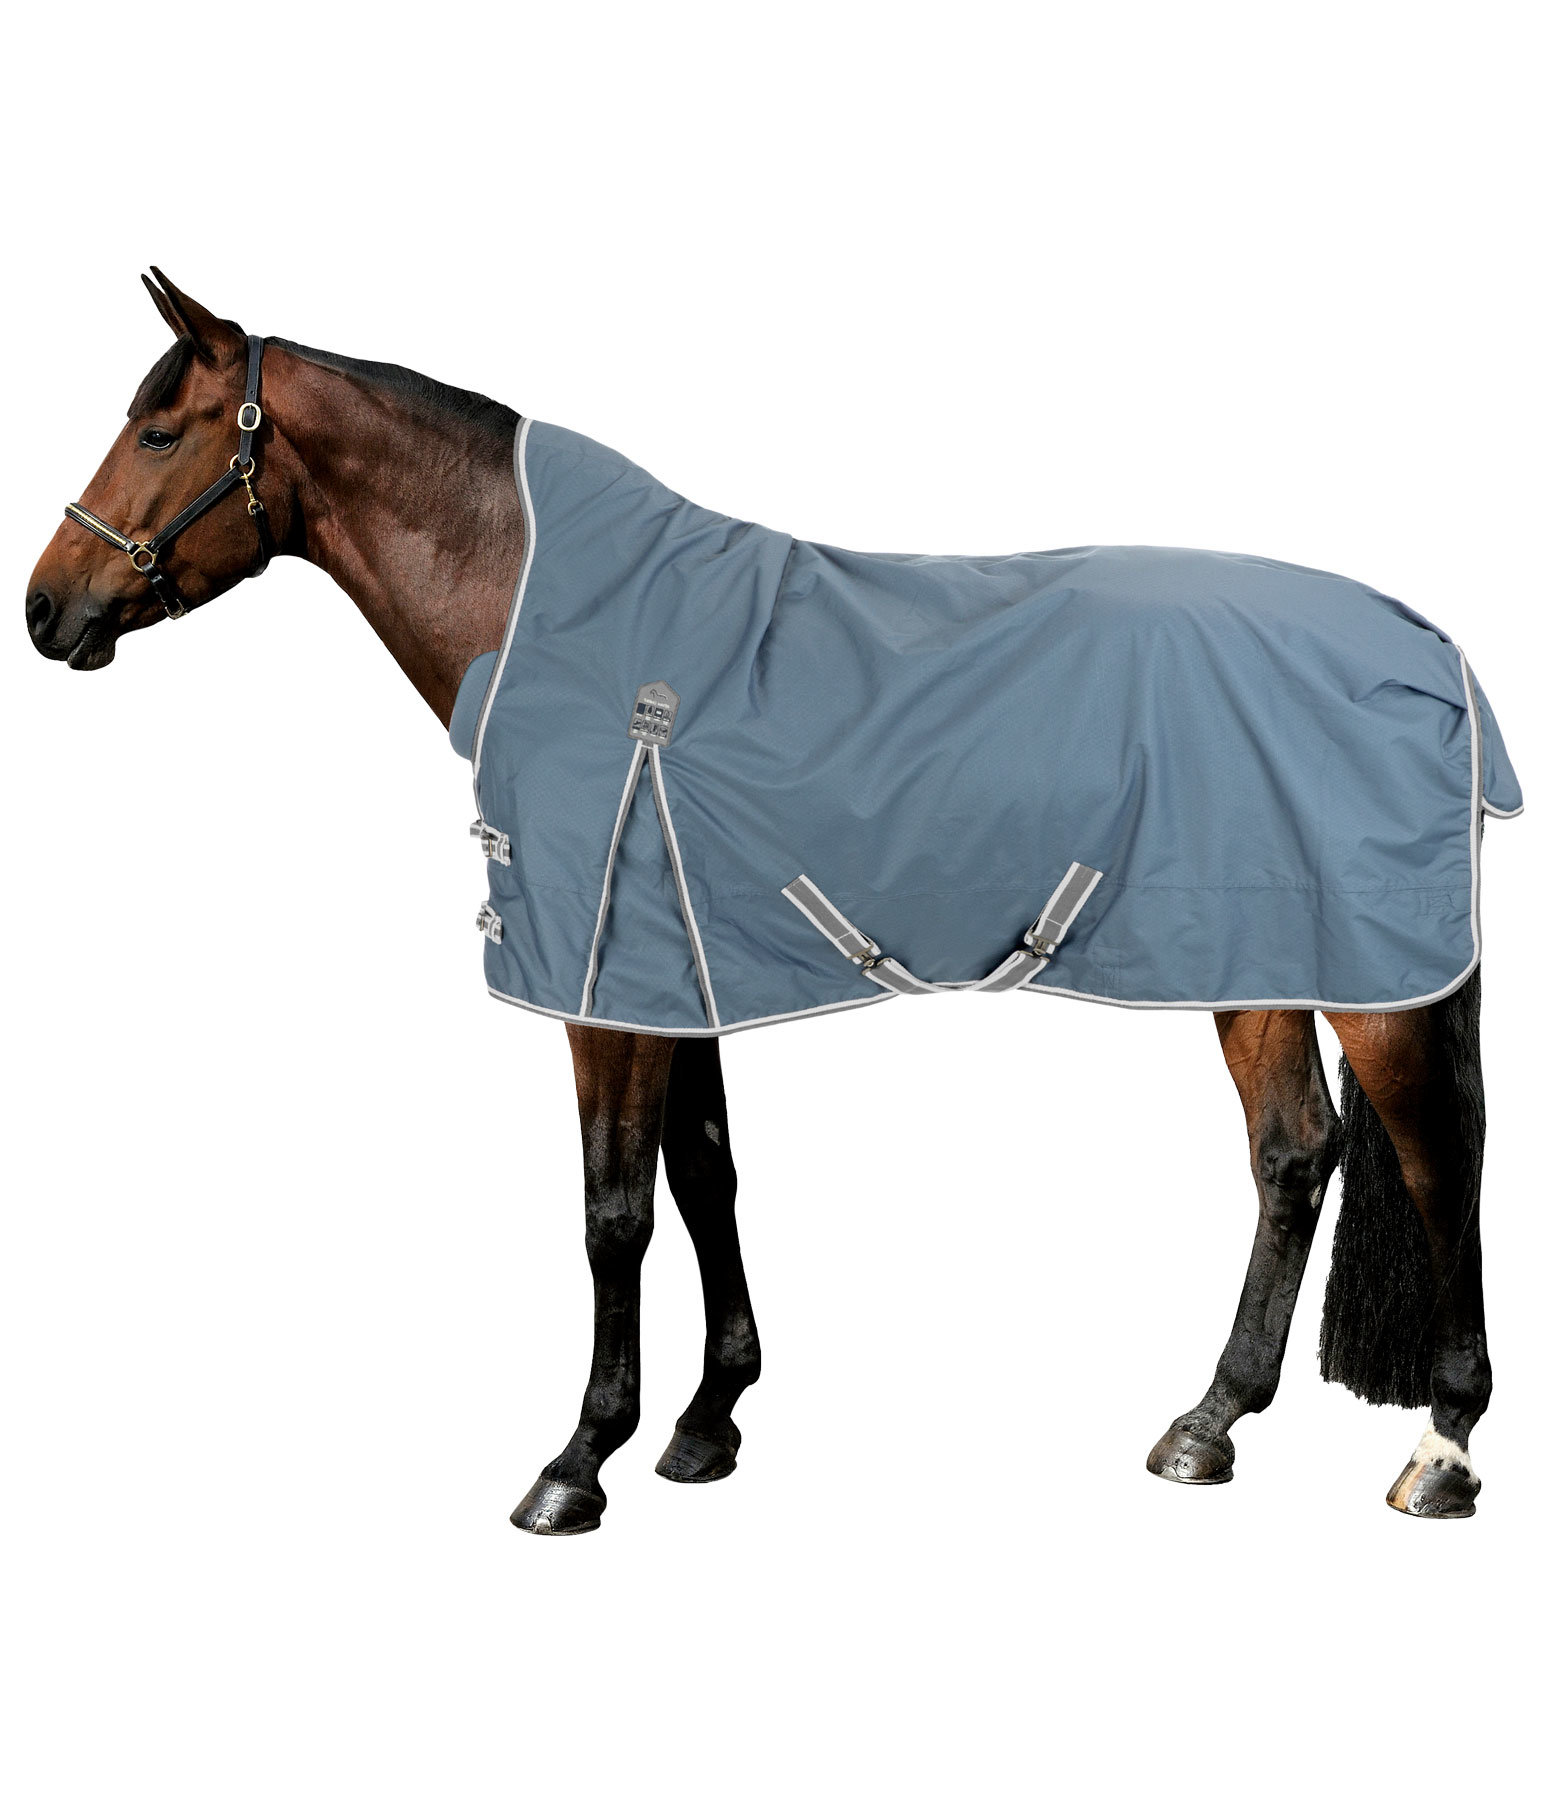 High Neck Turnout Rug Jesco II With Fleece Lining, 0g